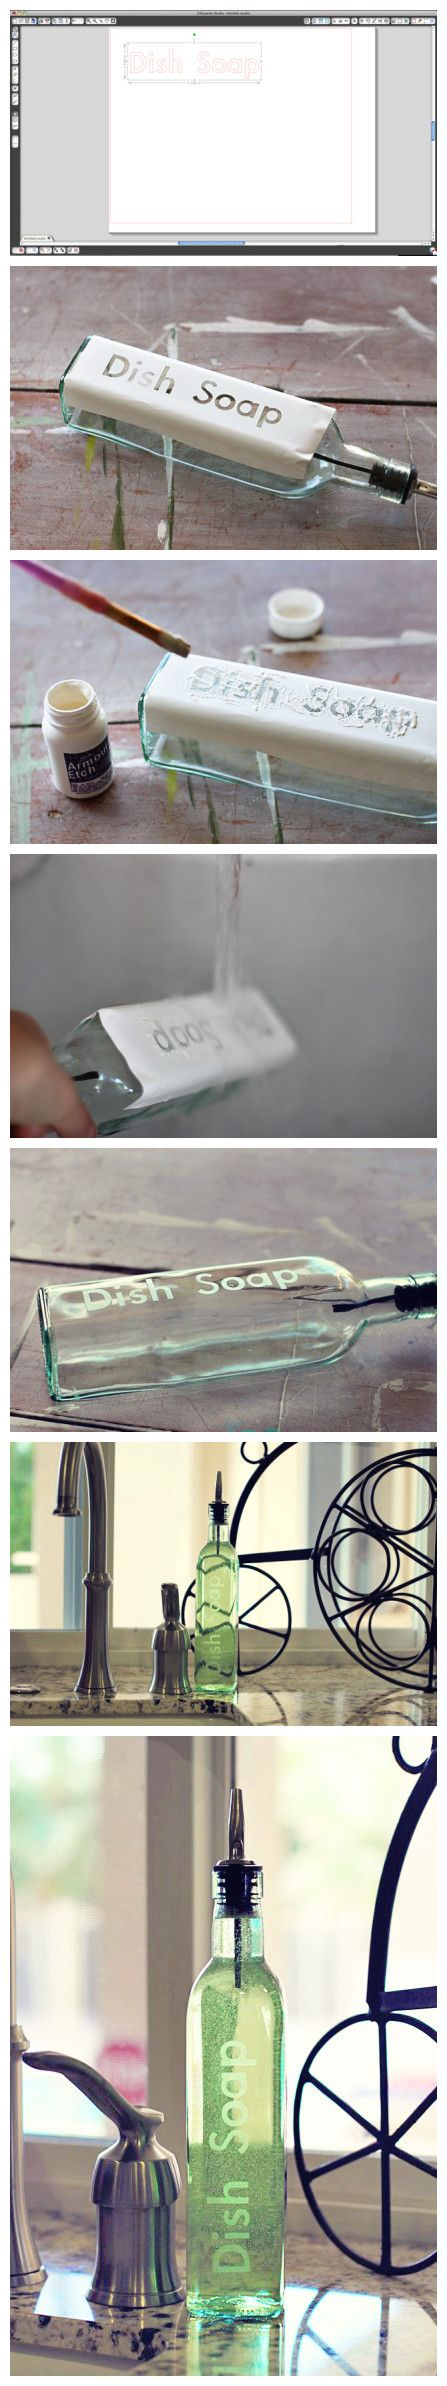 like the idea of the oil container for soap